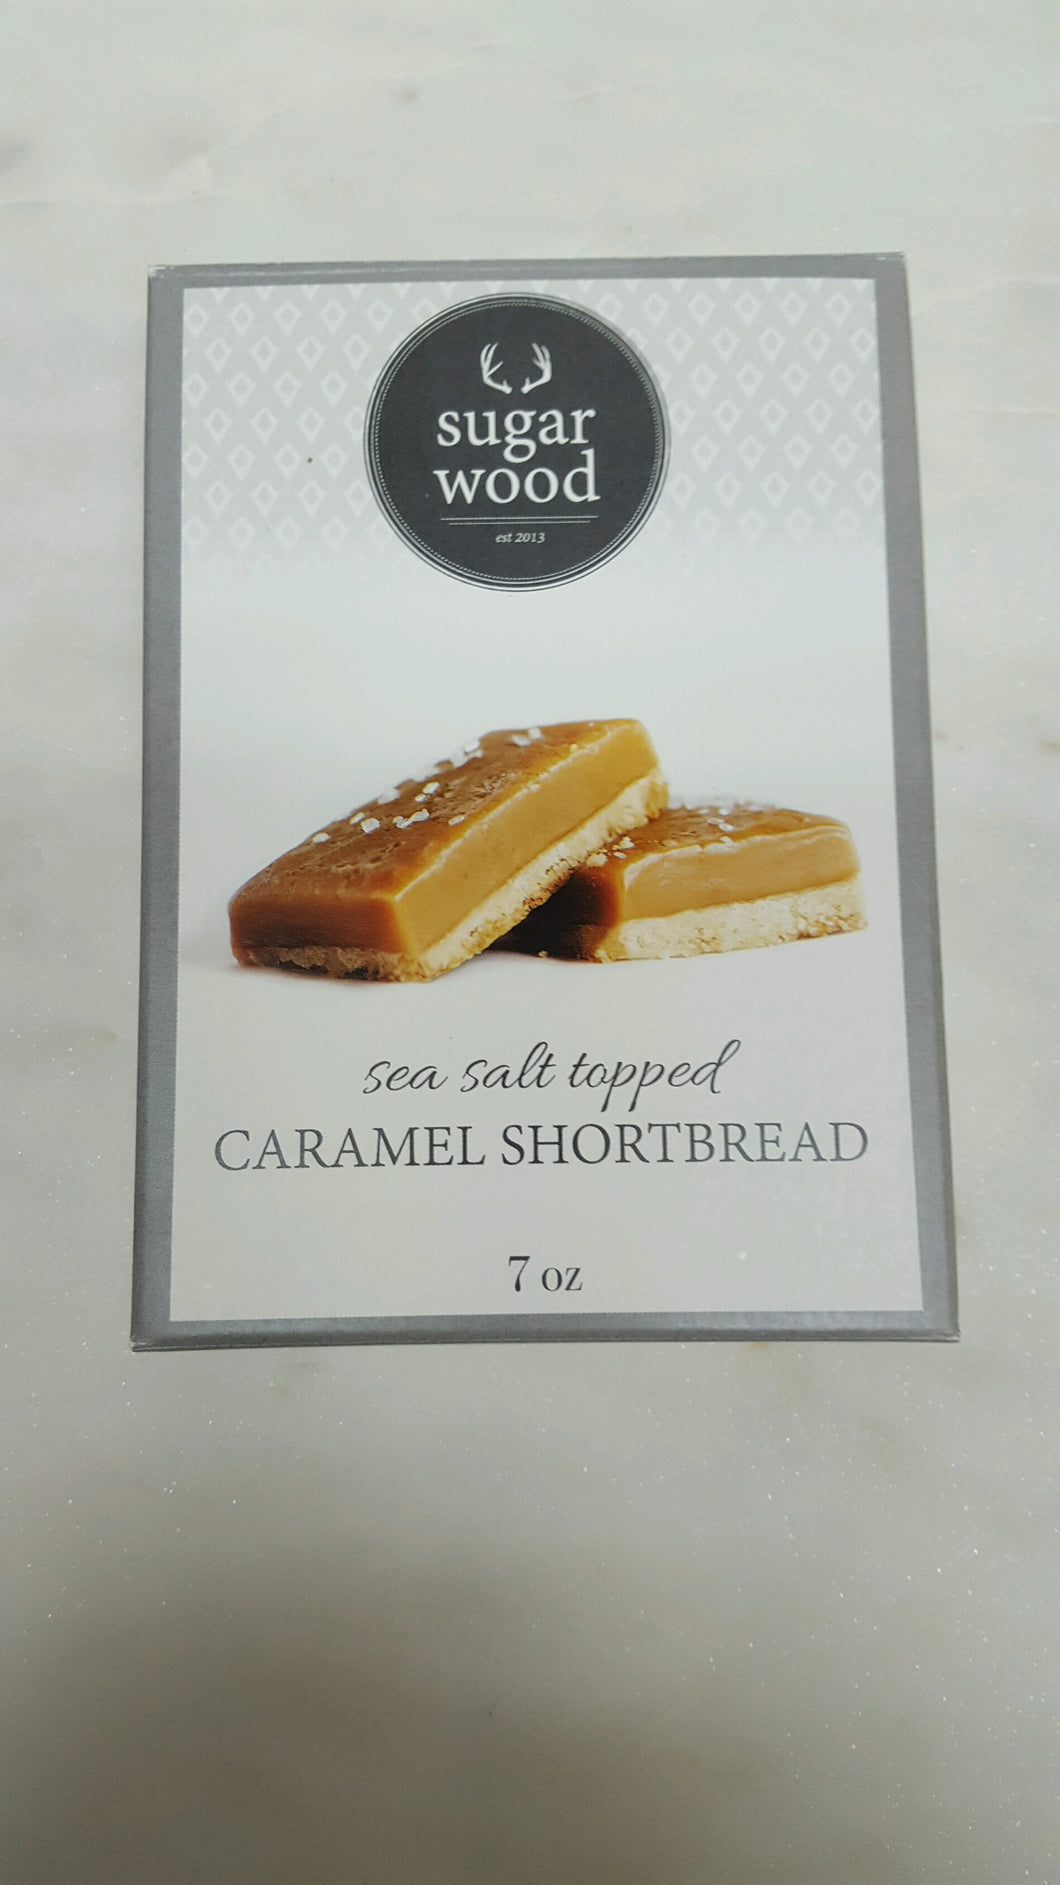 Add Caramel Shortbread to gift box